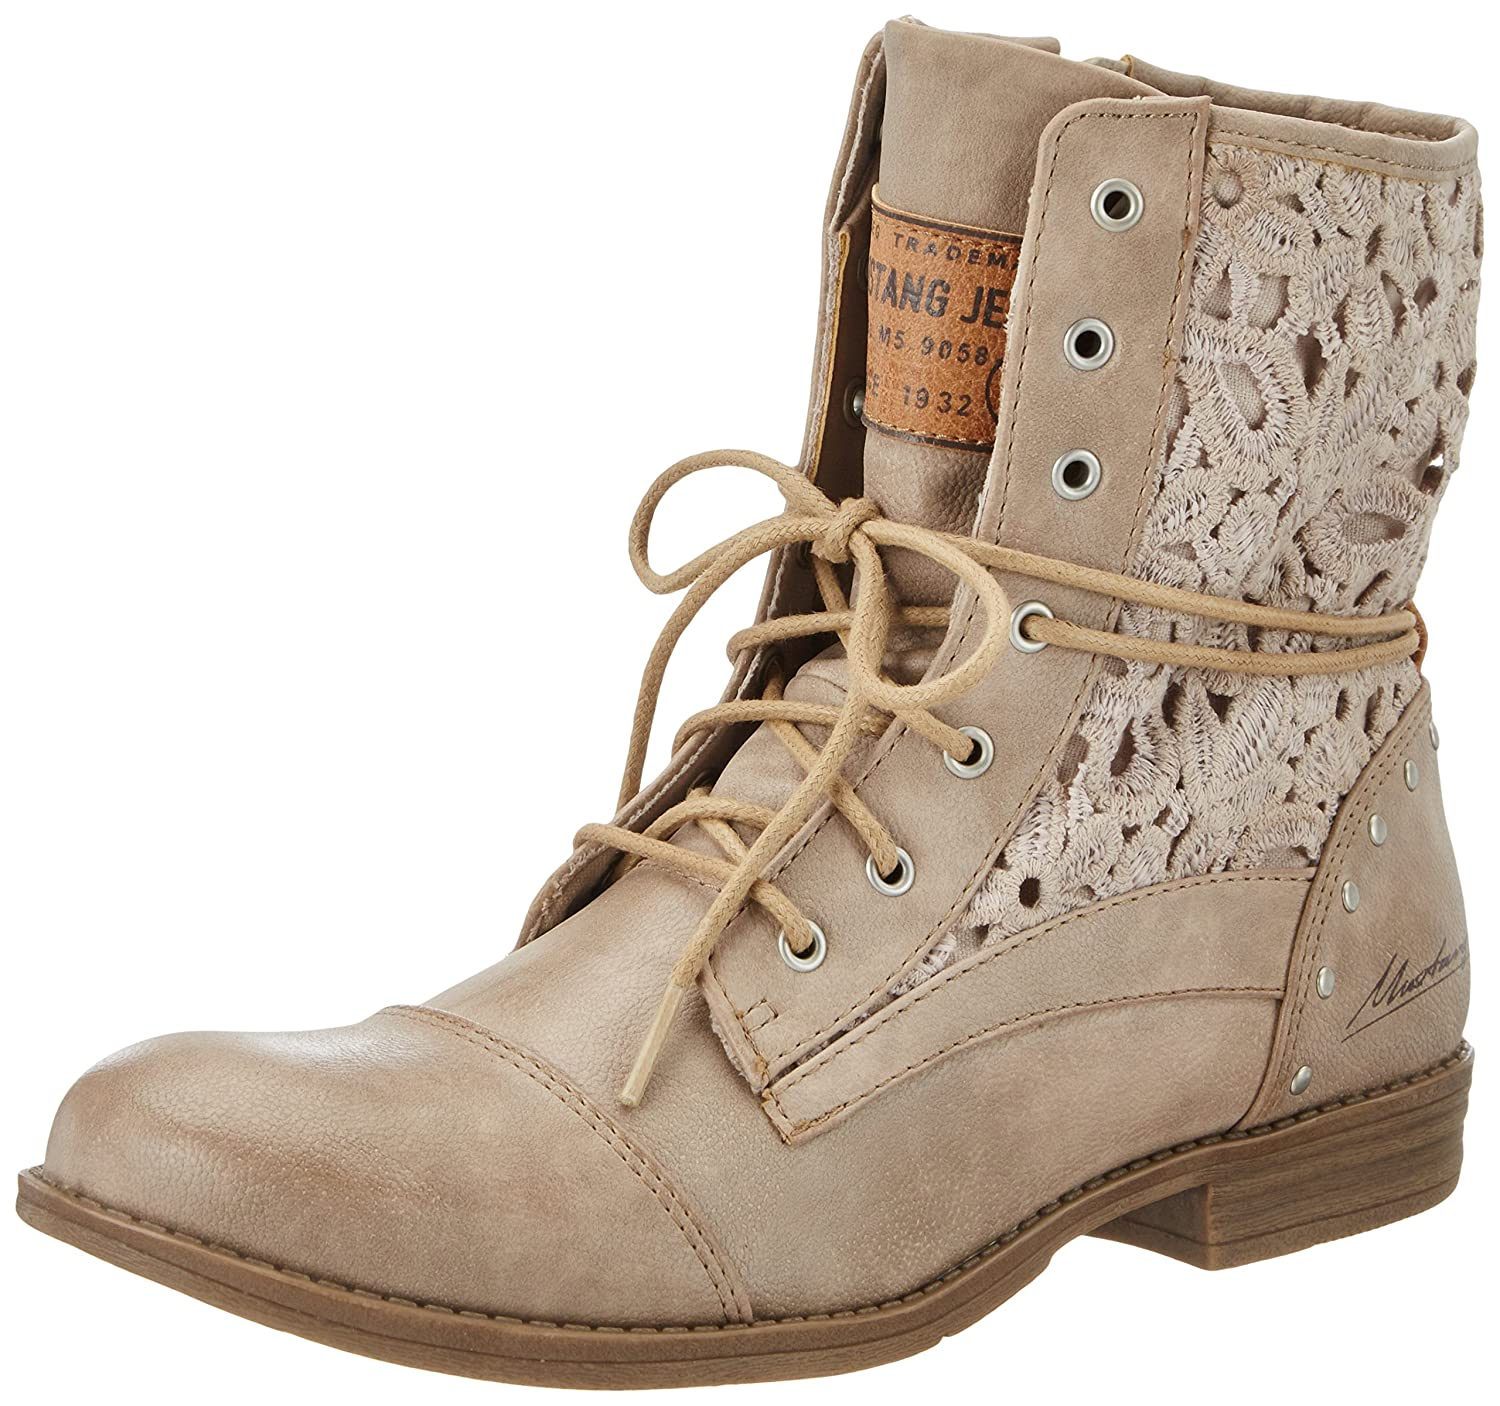 Mustang 1157-527, (318 Botines Femme, Braun (318 Taupe) Marron Femme, (Taupe) (Taupe) e228493 - piero.space